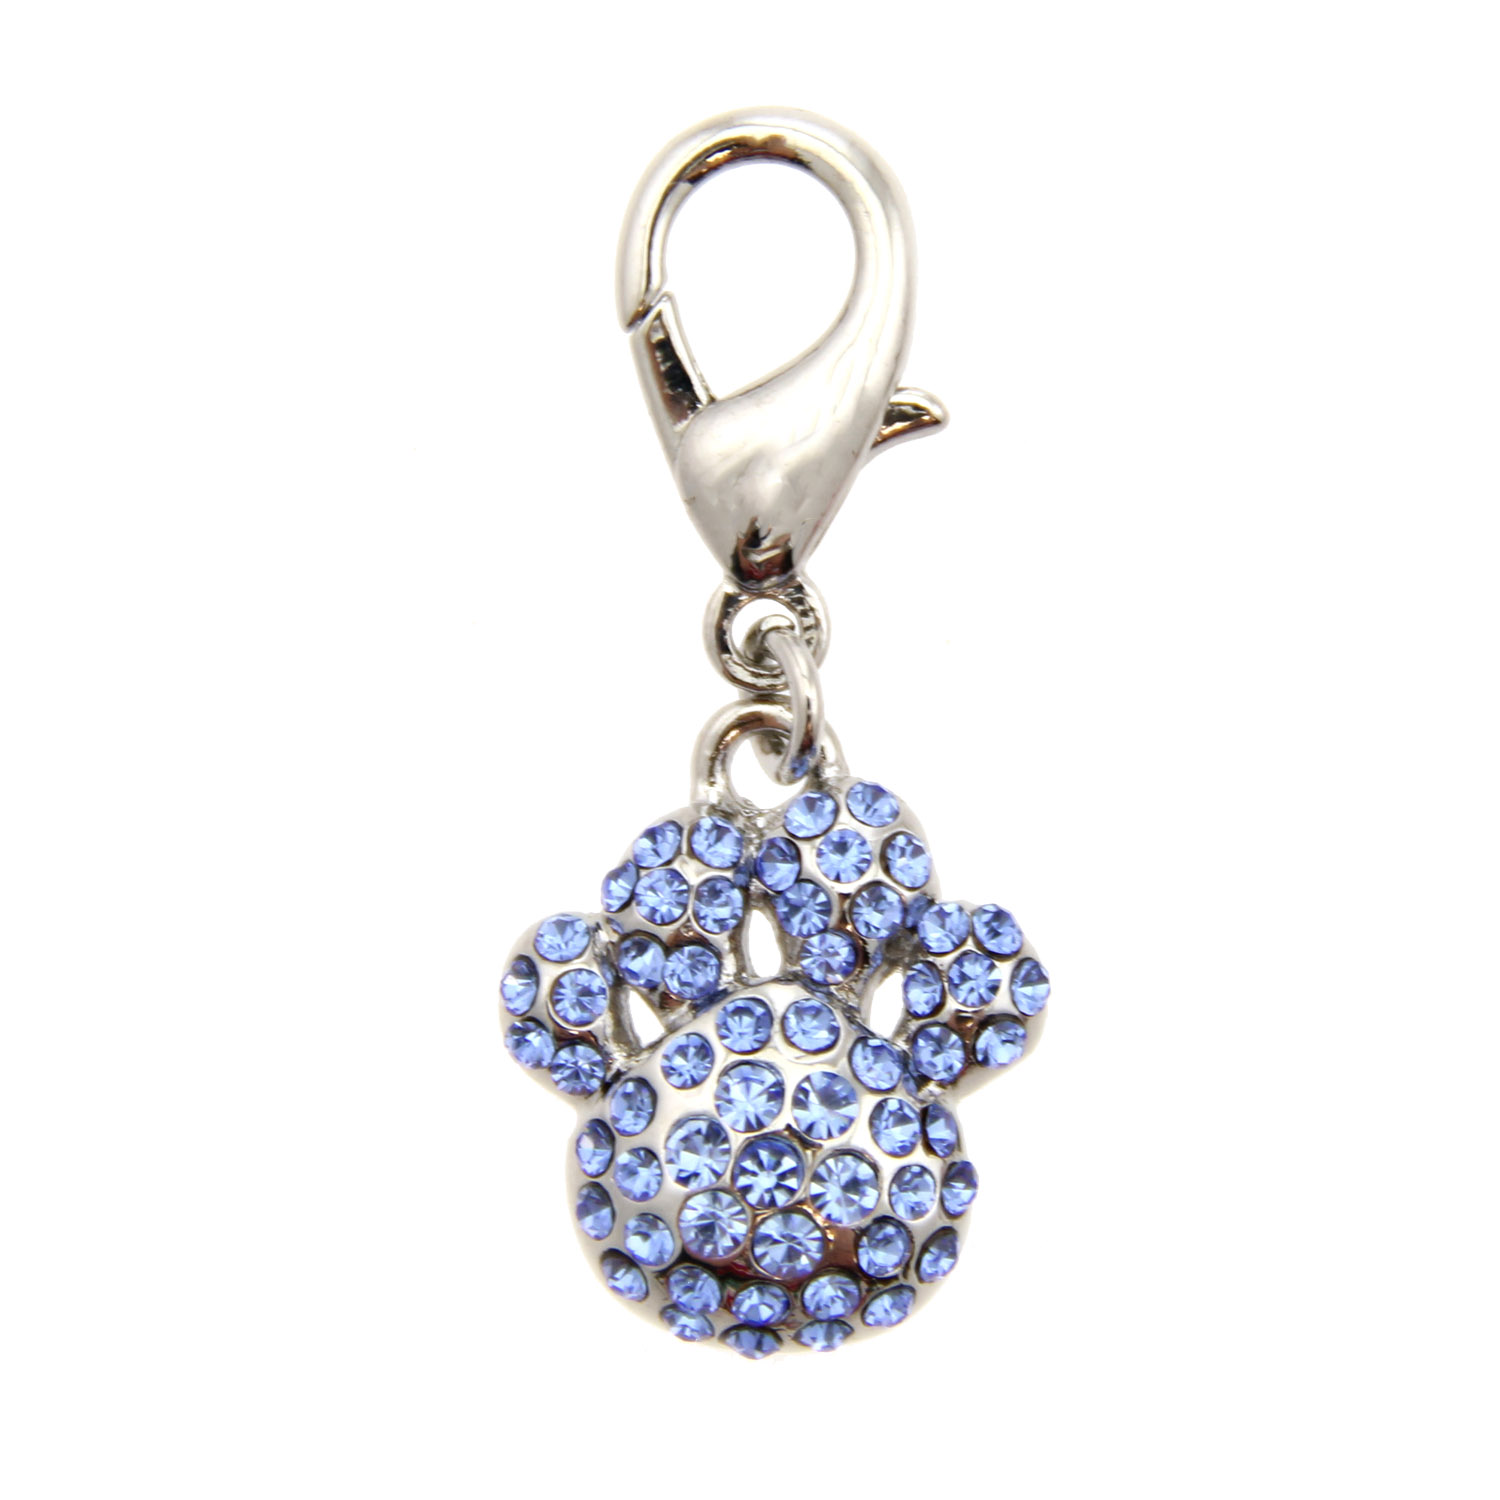 Pave Paw D-Ring Dog and Cat Collar Charm by foufou Dog - Blue